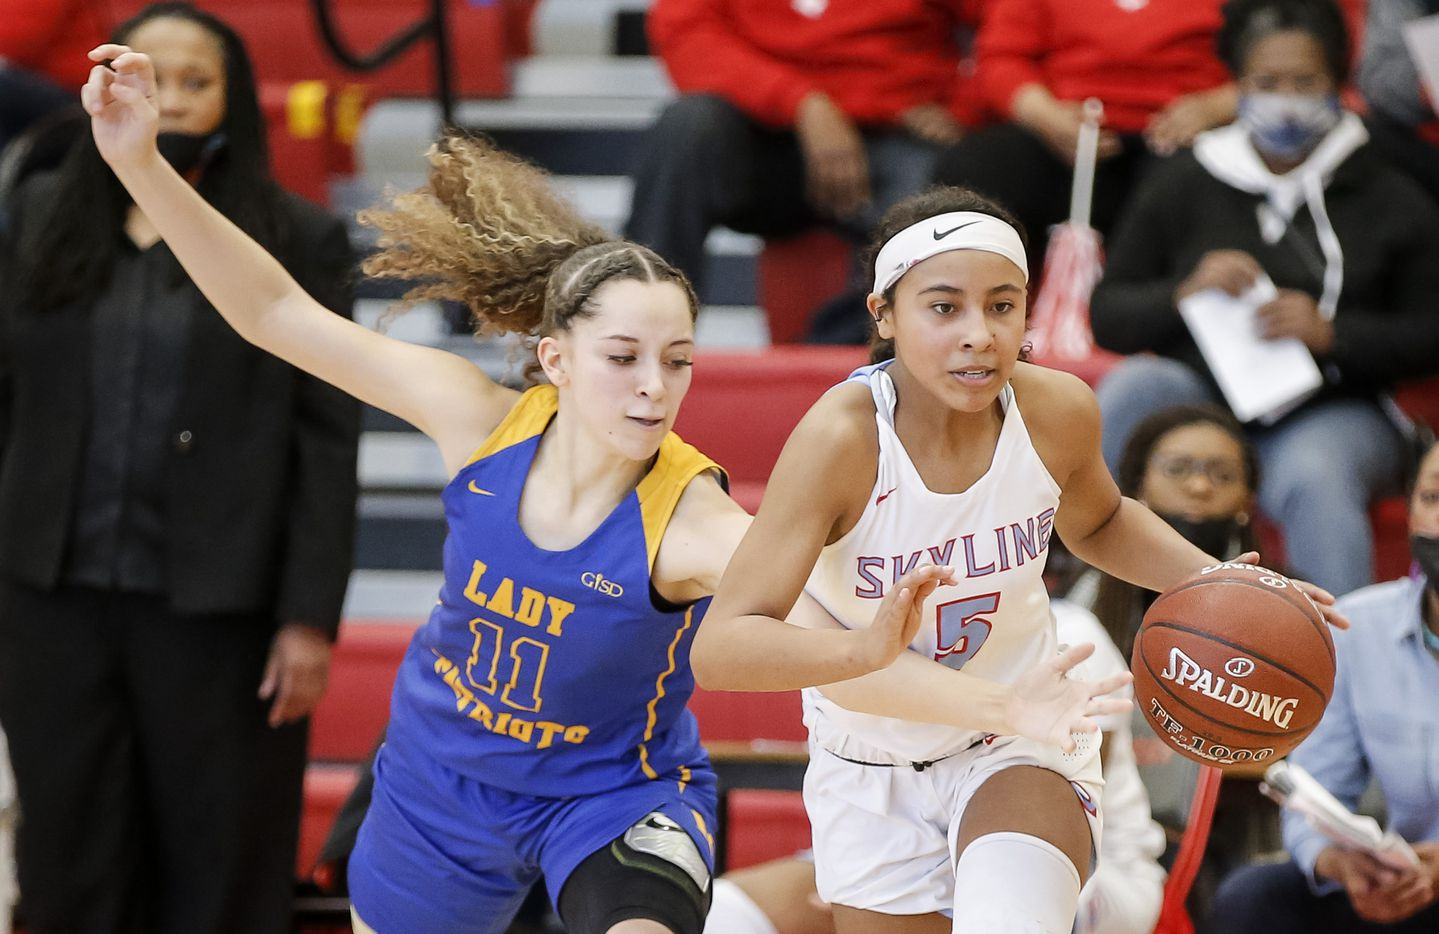 Skyline freshman Lily Brown (5) battles Lakeview Centennial Alexis Gie (11) for space during a girls basketball first-round playoff game at Hillcrest High School in Dallas, Saturday, February 13, 2021. Skyline won 49-42. (Brandon Wade/Special Contributor)